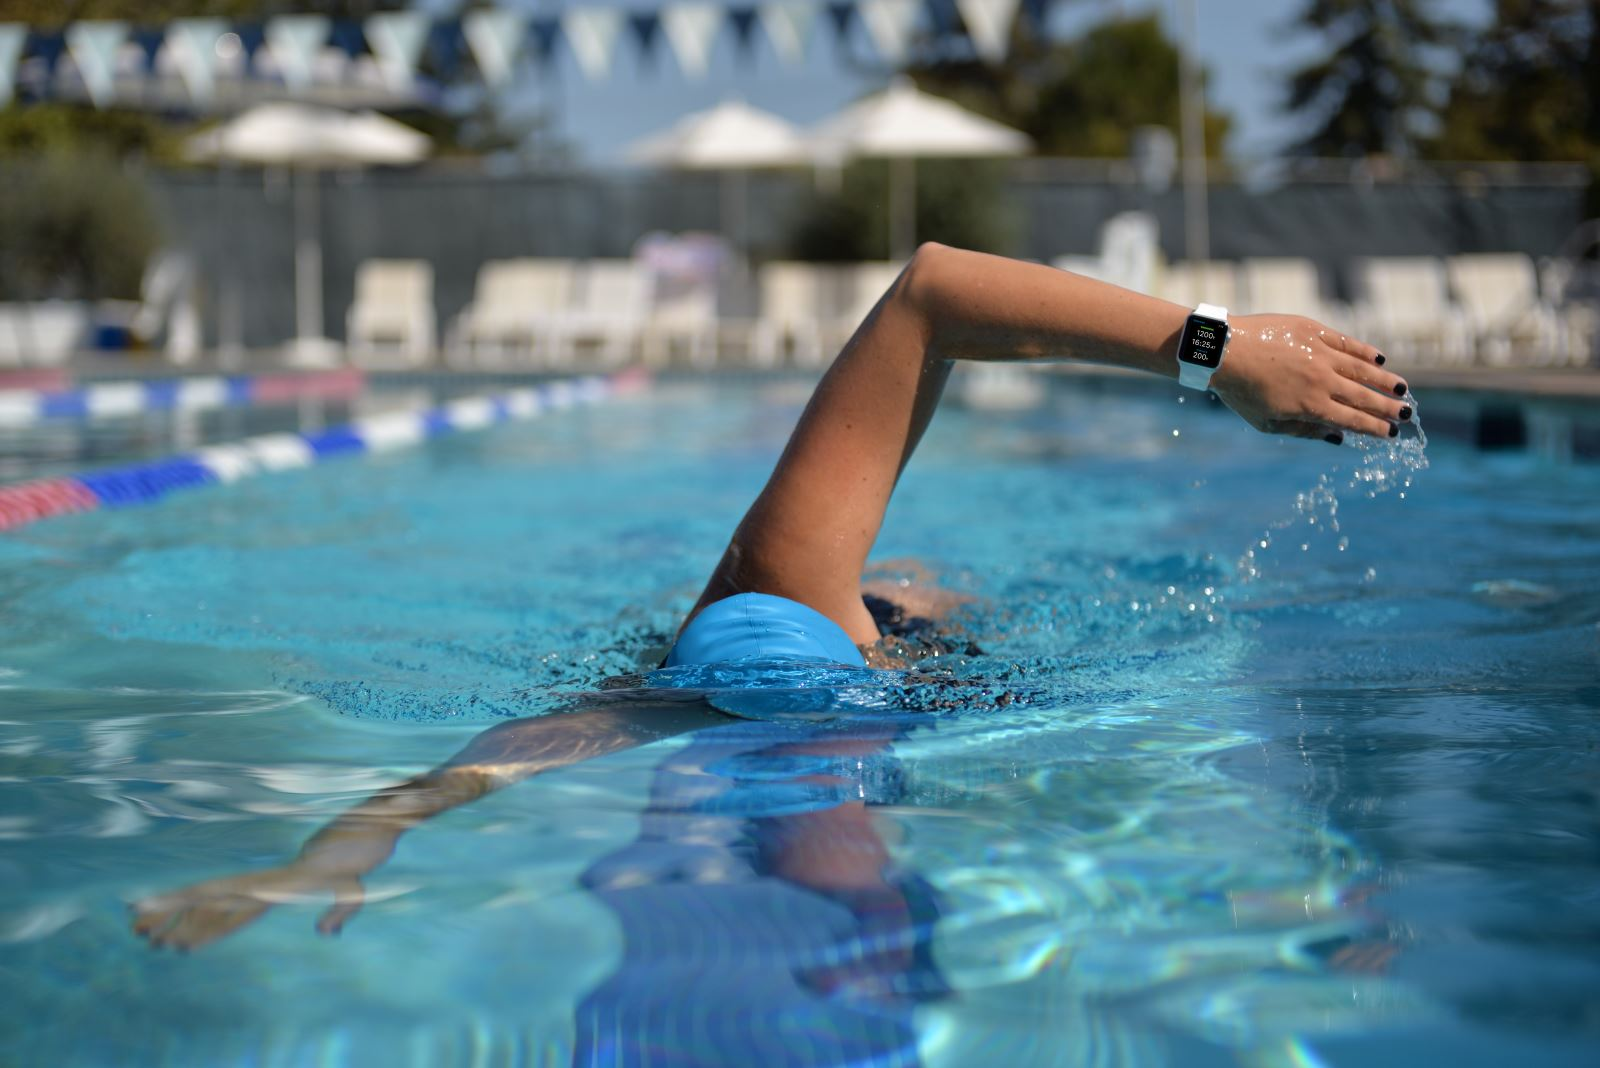 The Best Ways To Track Your Swim Workout